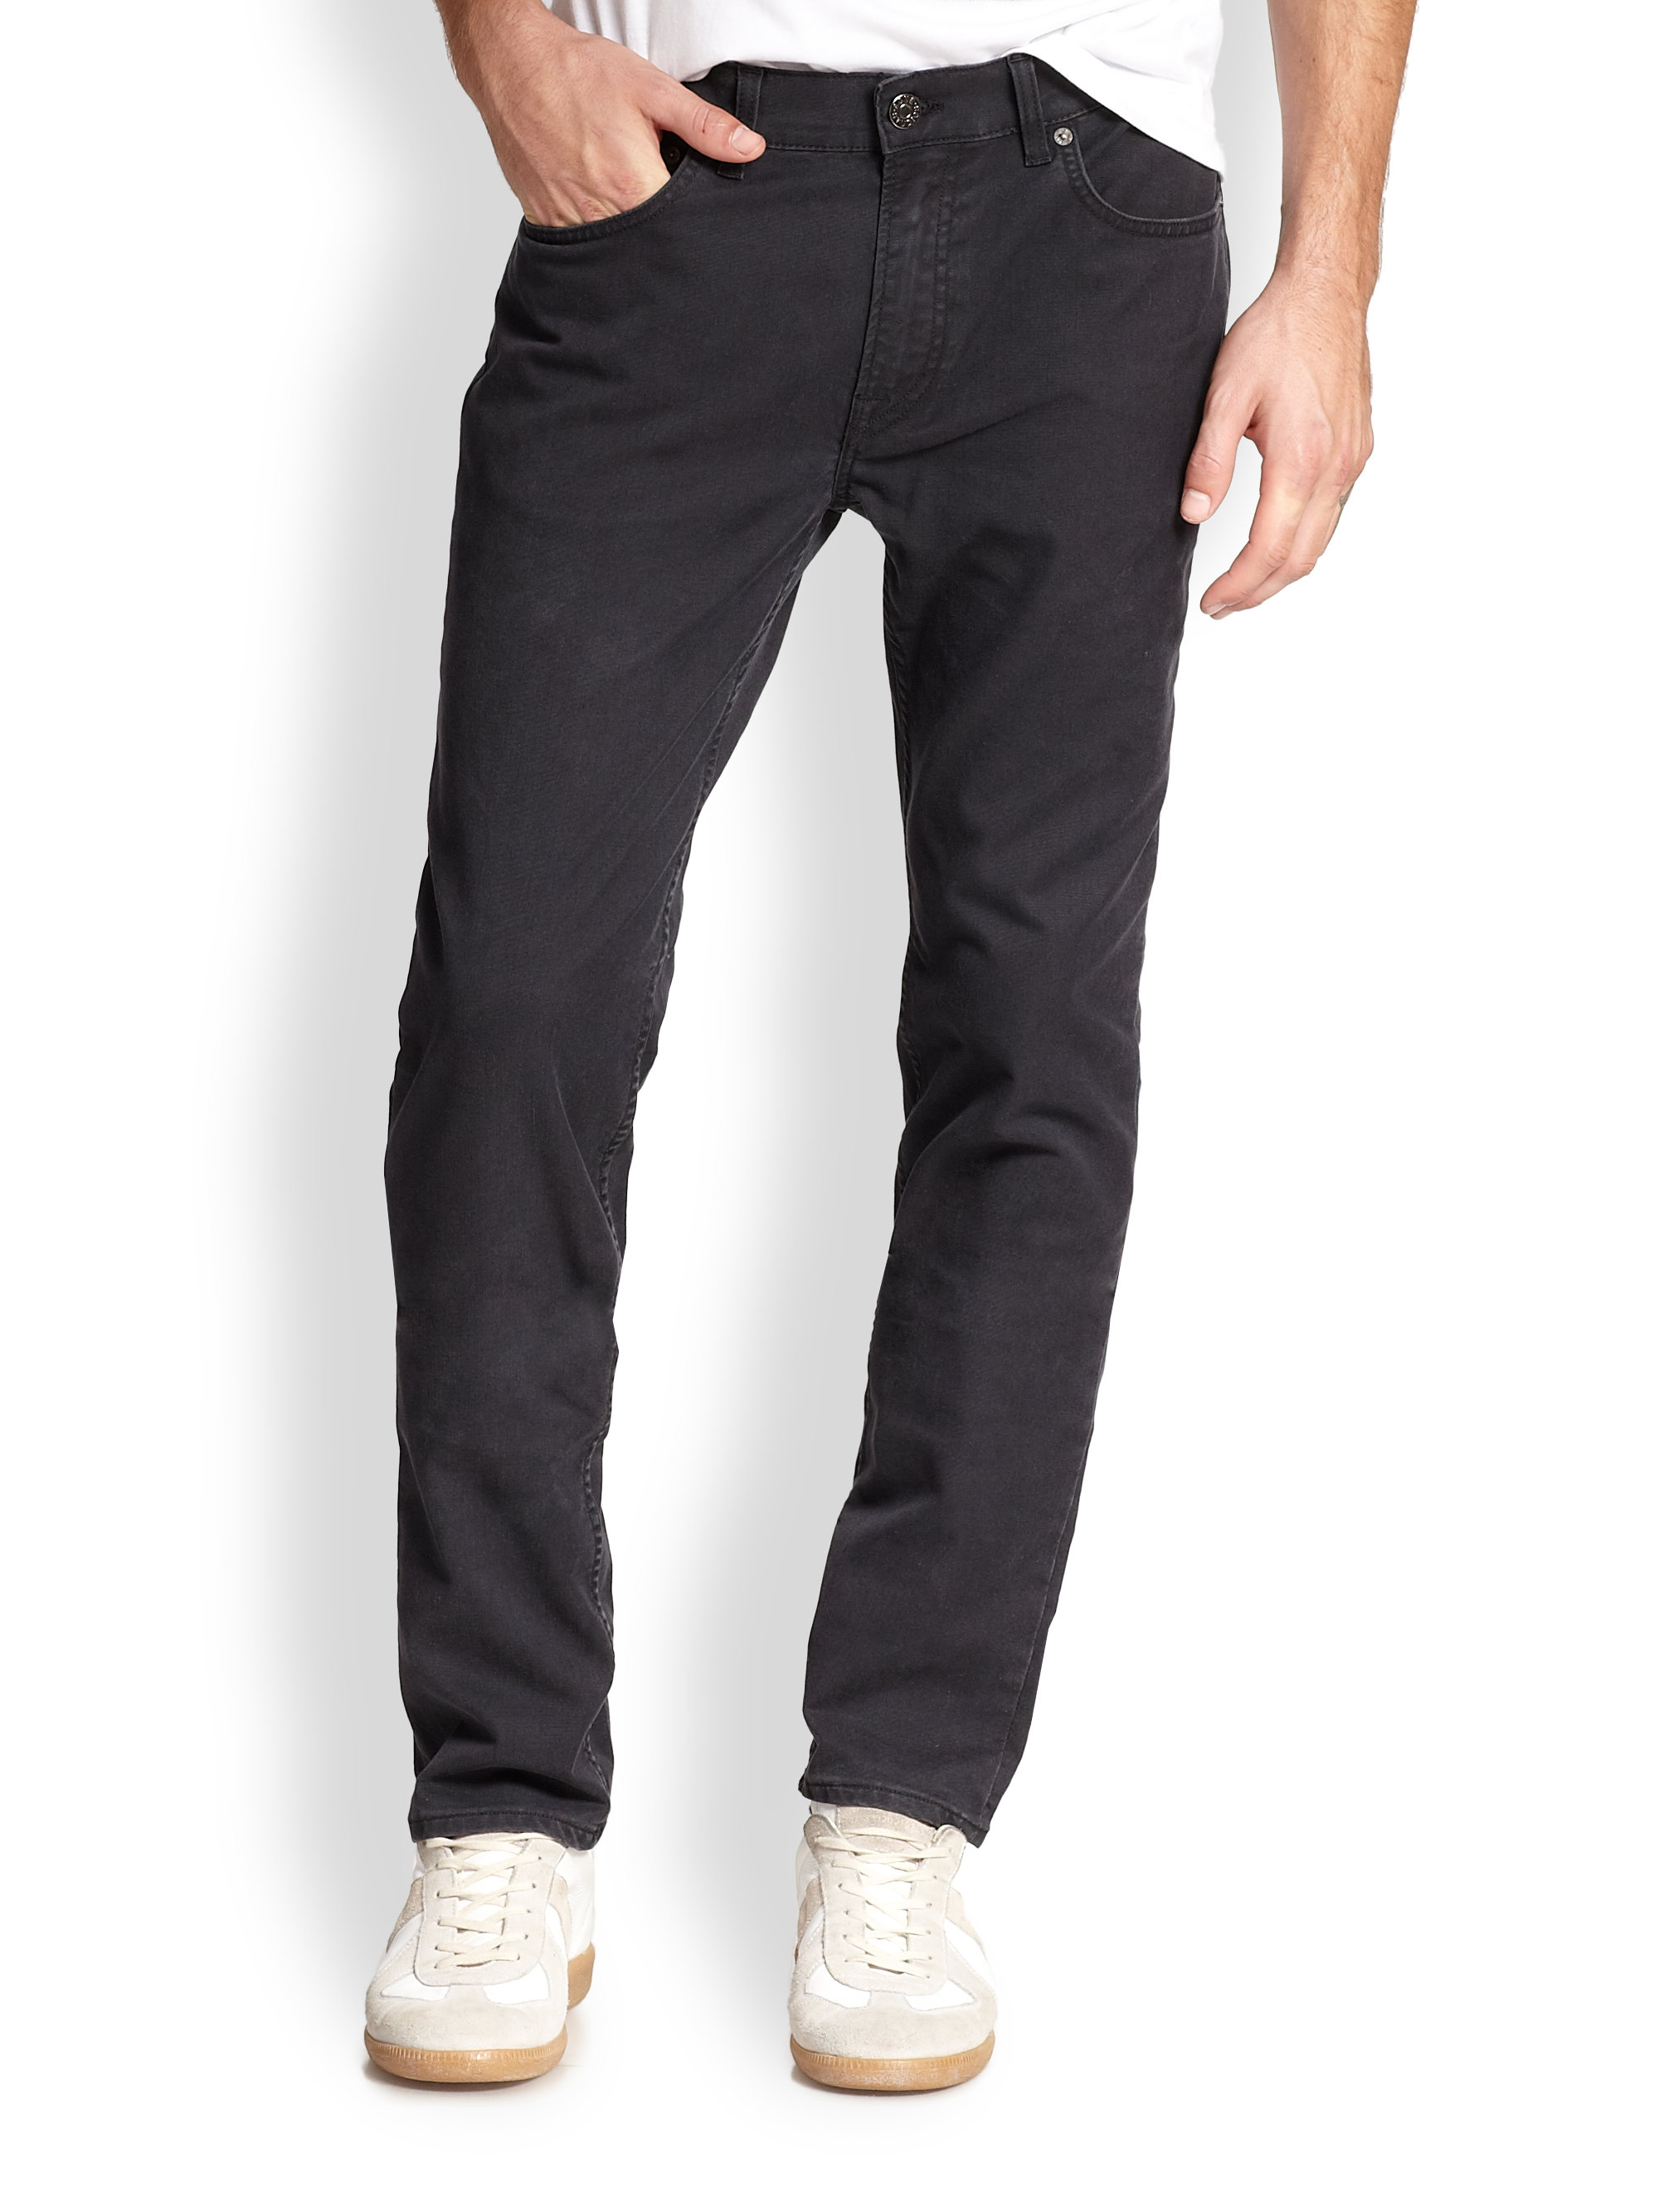 acne studios ace ups straight leg jeans in black for men lyst. Black Bedroom Furniture Sets. Home Design Ideas